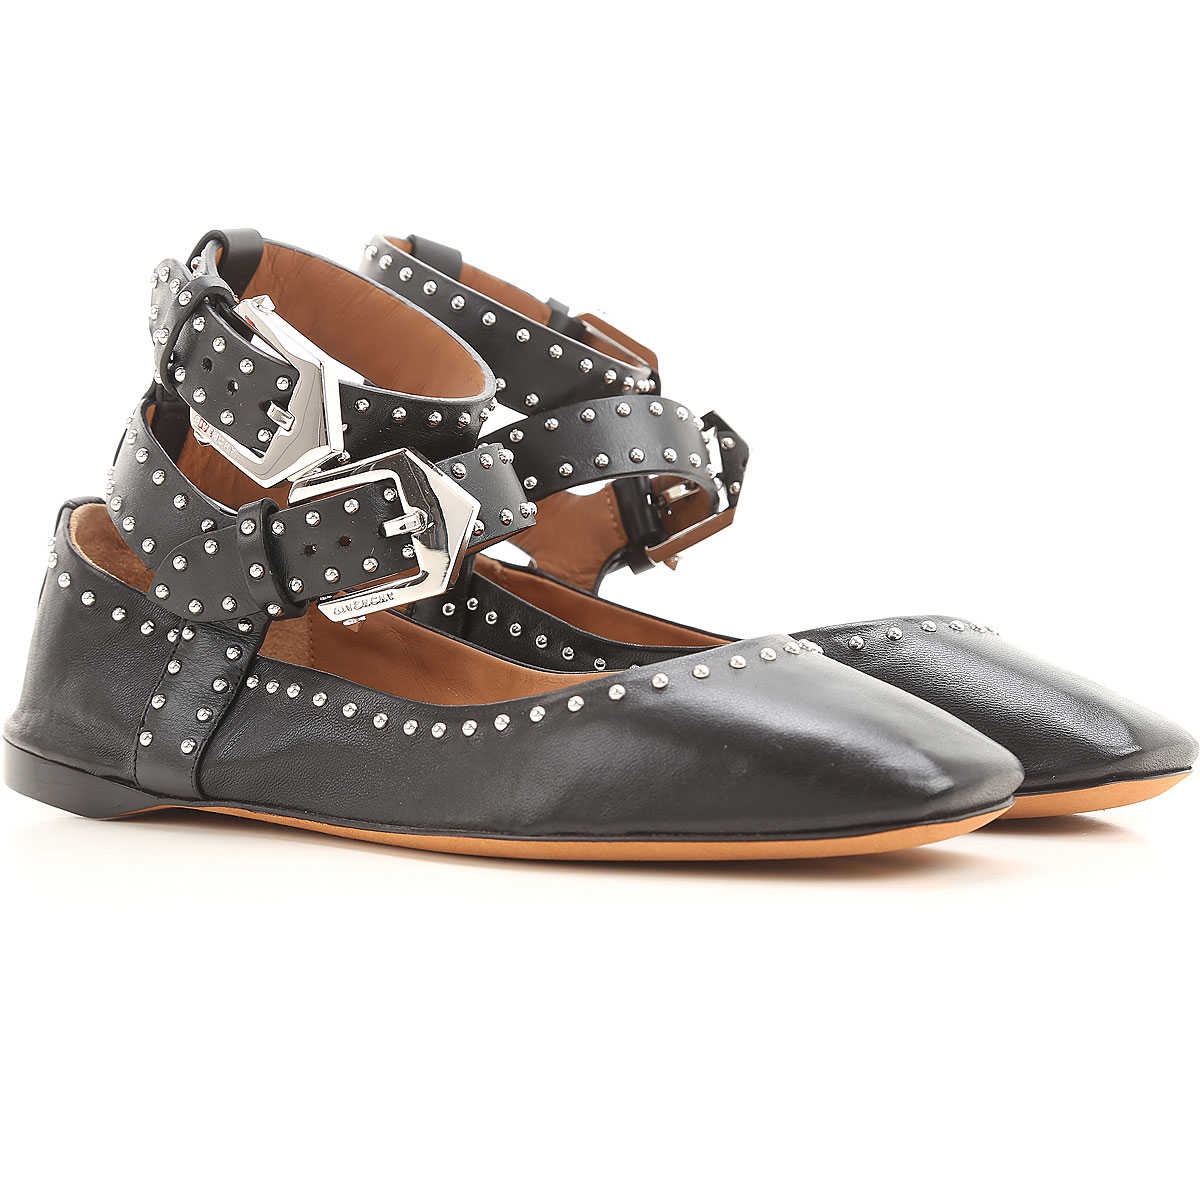 Givenchy Ballet Flats Ballerina Shoes for Women On Sale in Outlet